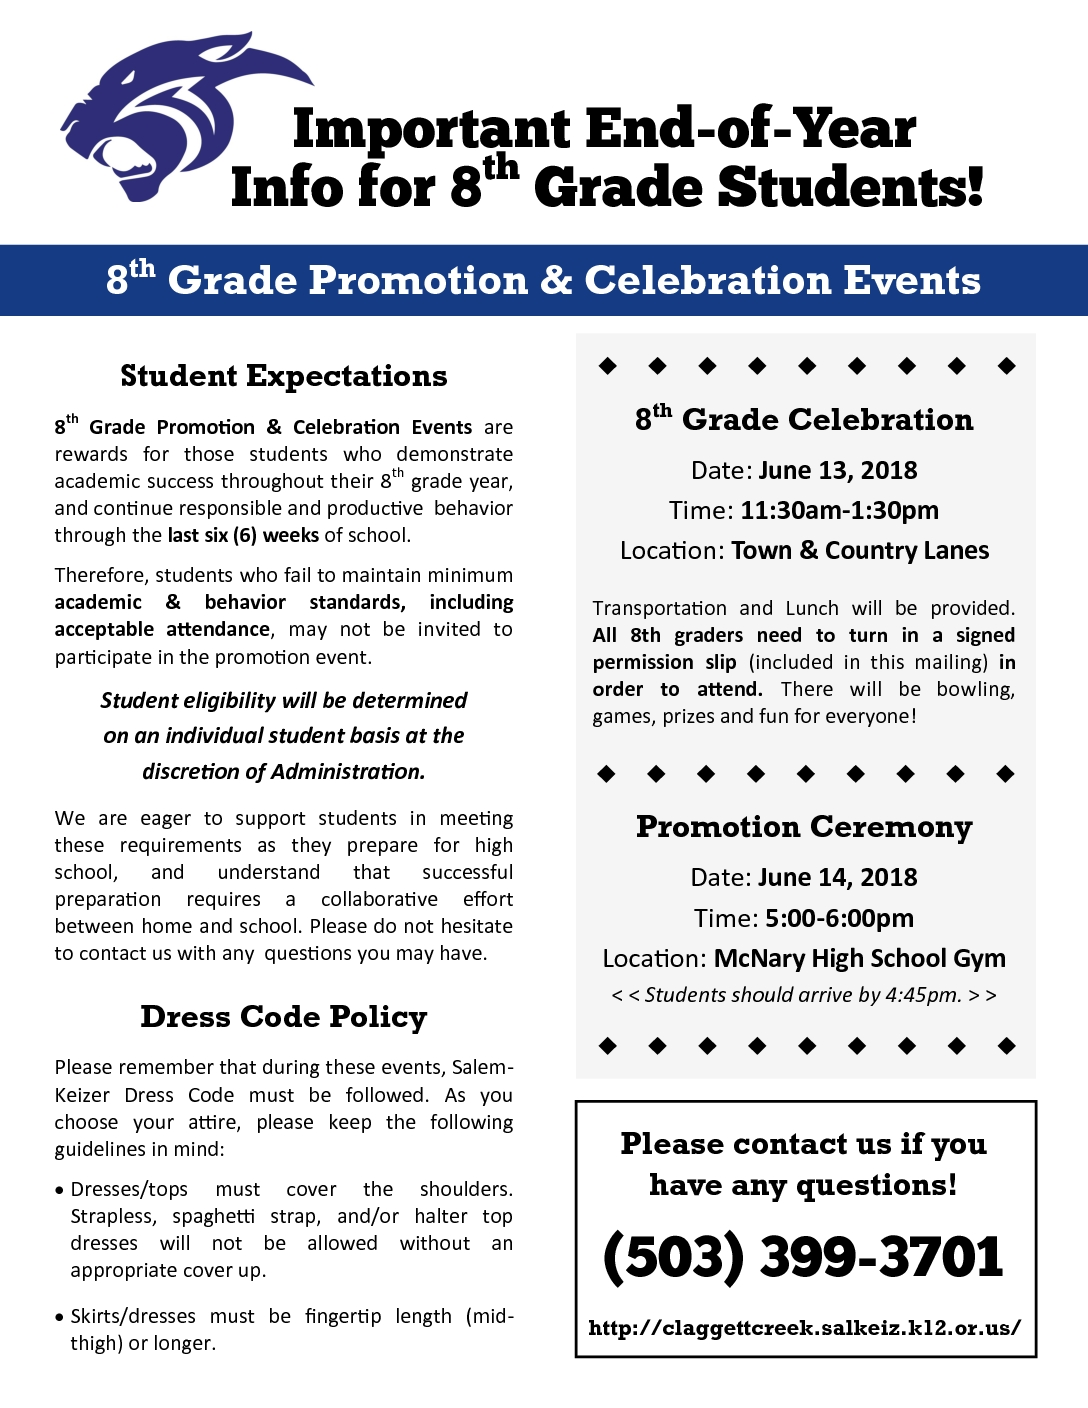 End of Year Info for 8th Grade - Claggett Creek Middle School